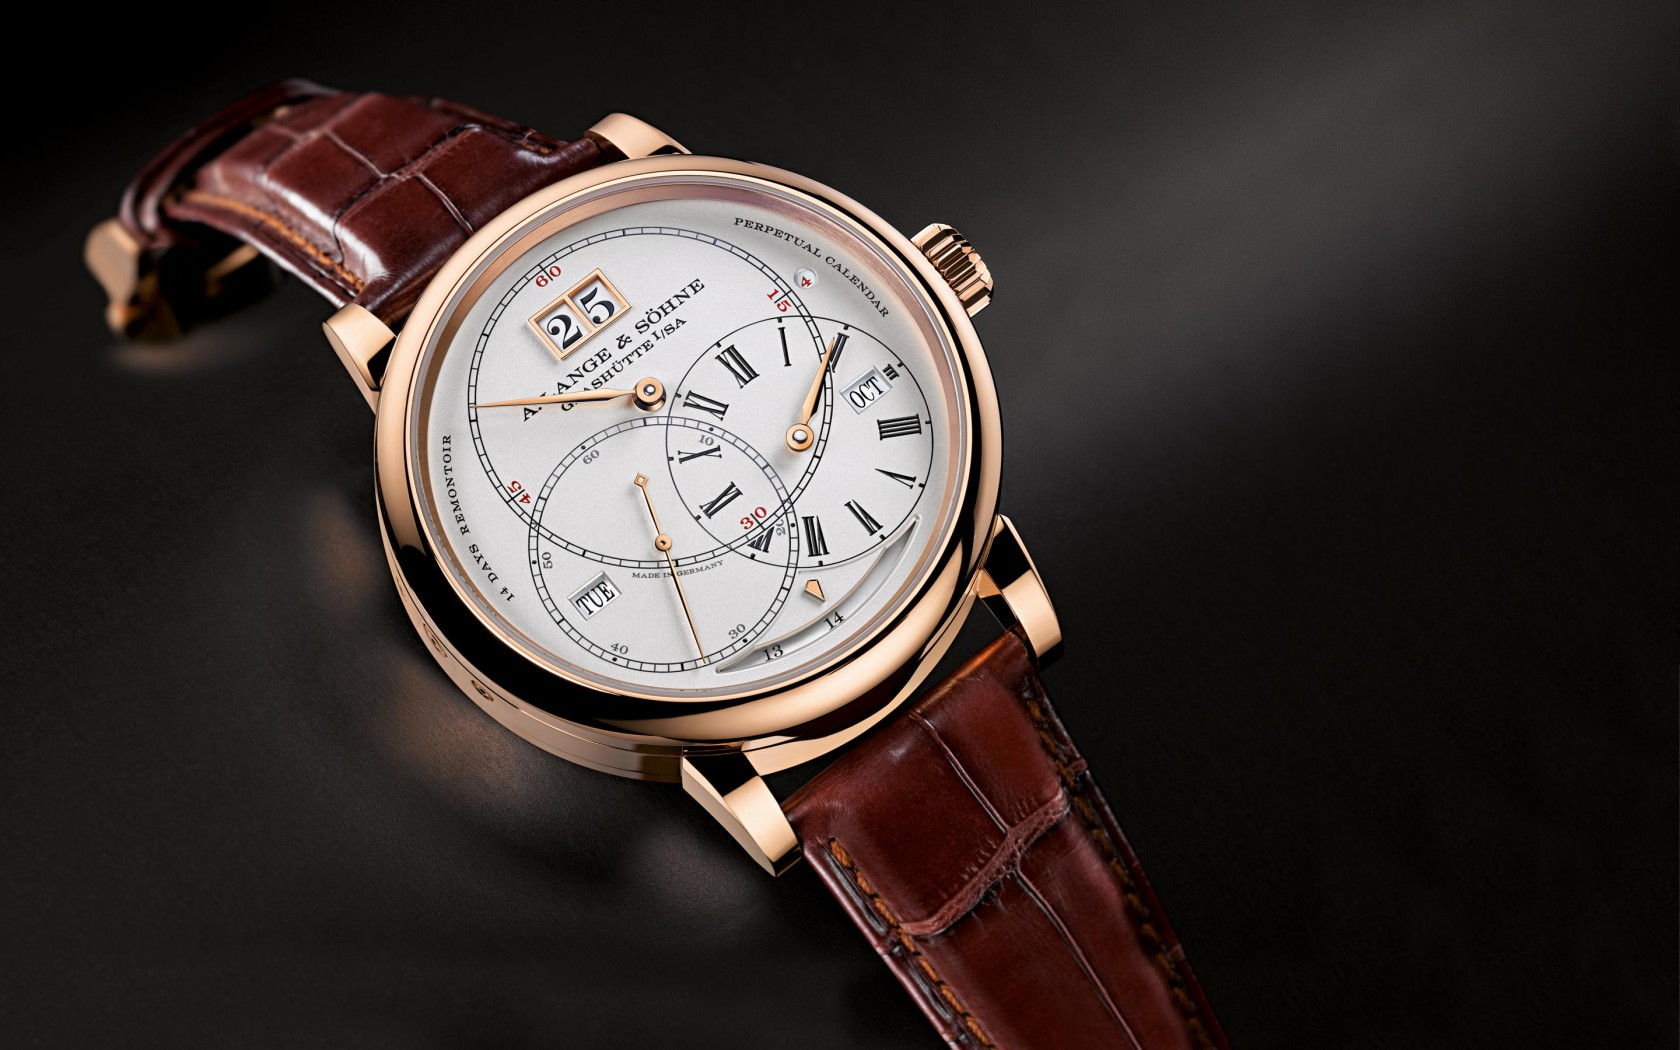 Perpetual Calendar Watches : Top perpetual calendar watches time transformed